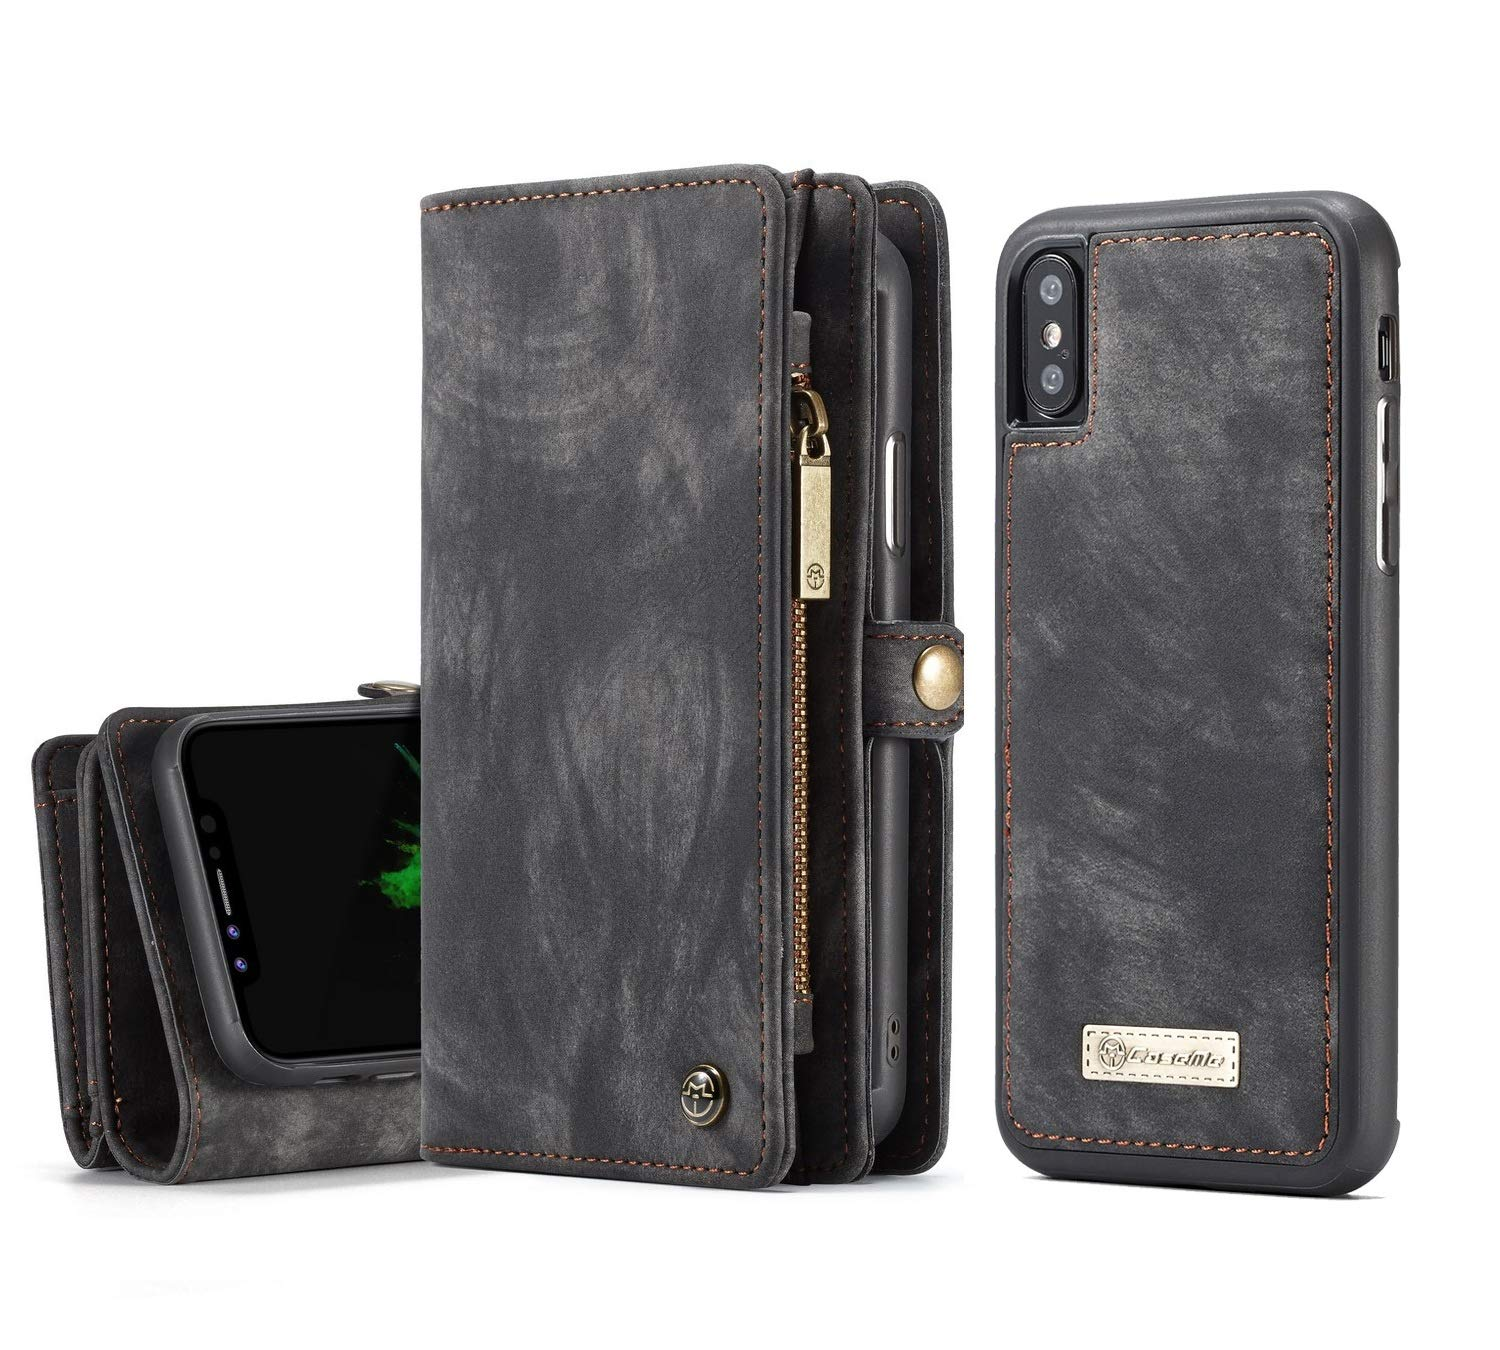 new concept ac5cf 887cb iPhone X/XS Wallet Case - MOONORN Premium Leather Zipper Purse Detachable  Magnetic Flip Case iPhone X/XS Shockproof Cell Phone Case with Credit Card  ...